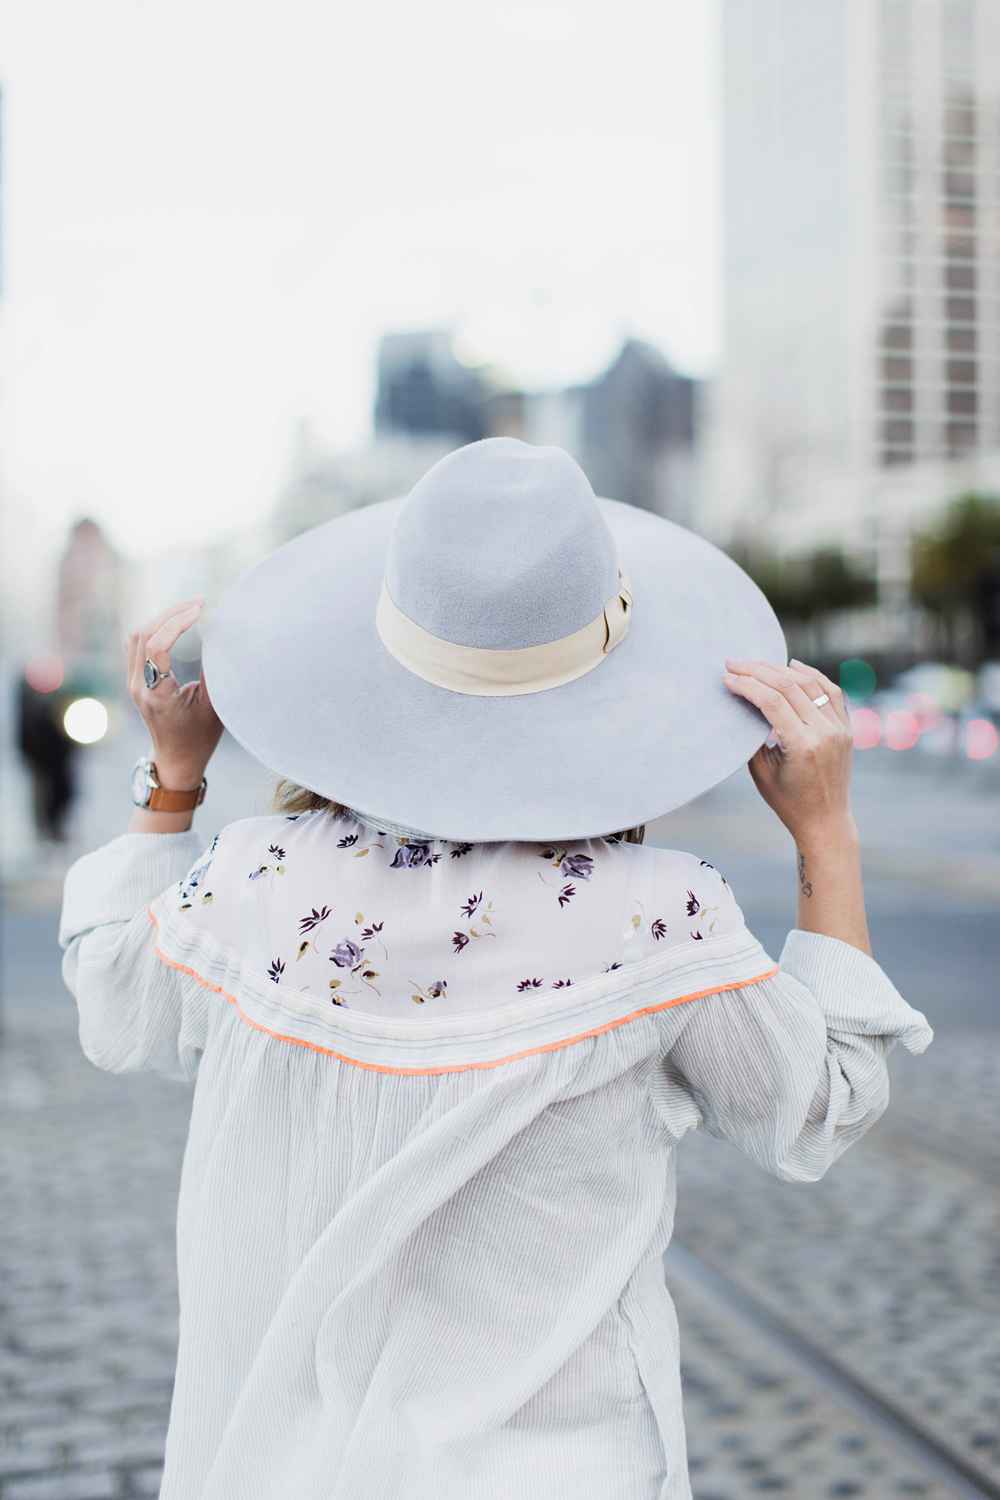 07freepeople-sf-sanfrancisco-hat-style-fashion